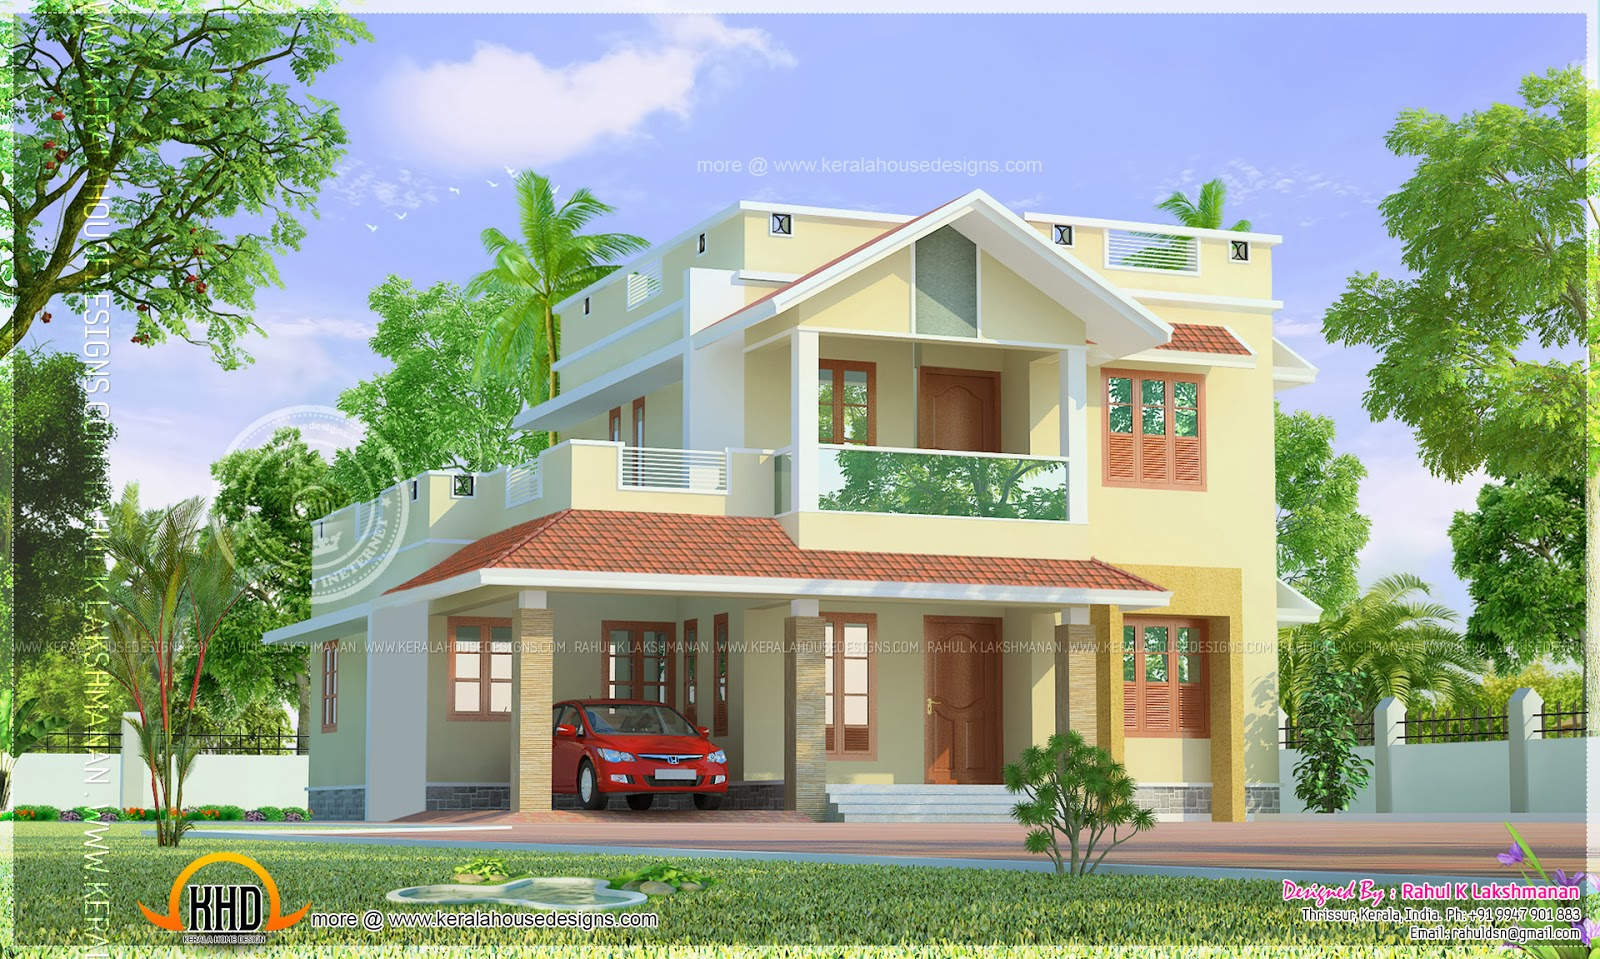 Cute little two storied home design kerala home design for Home designers in my area